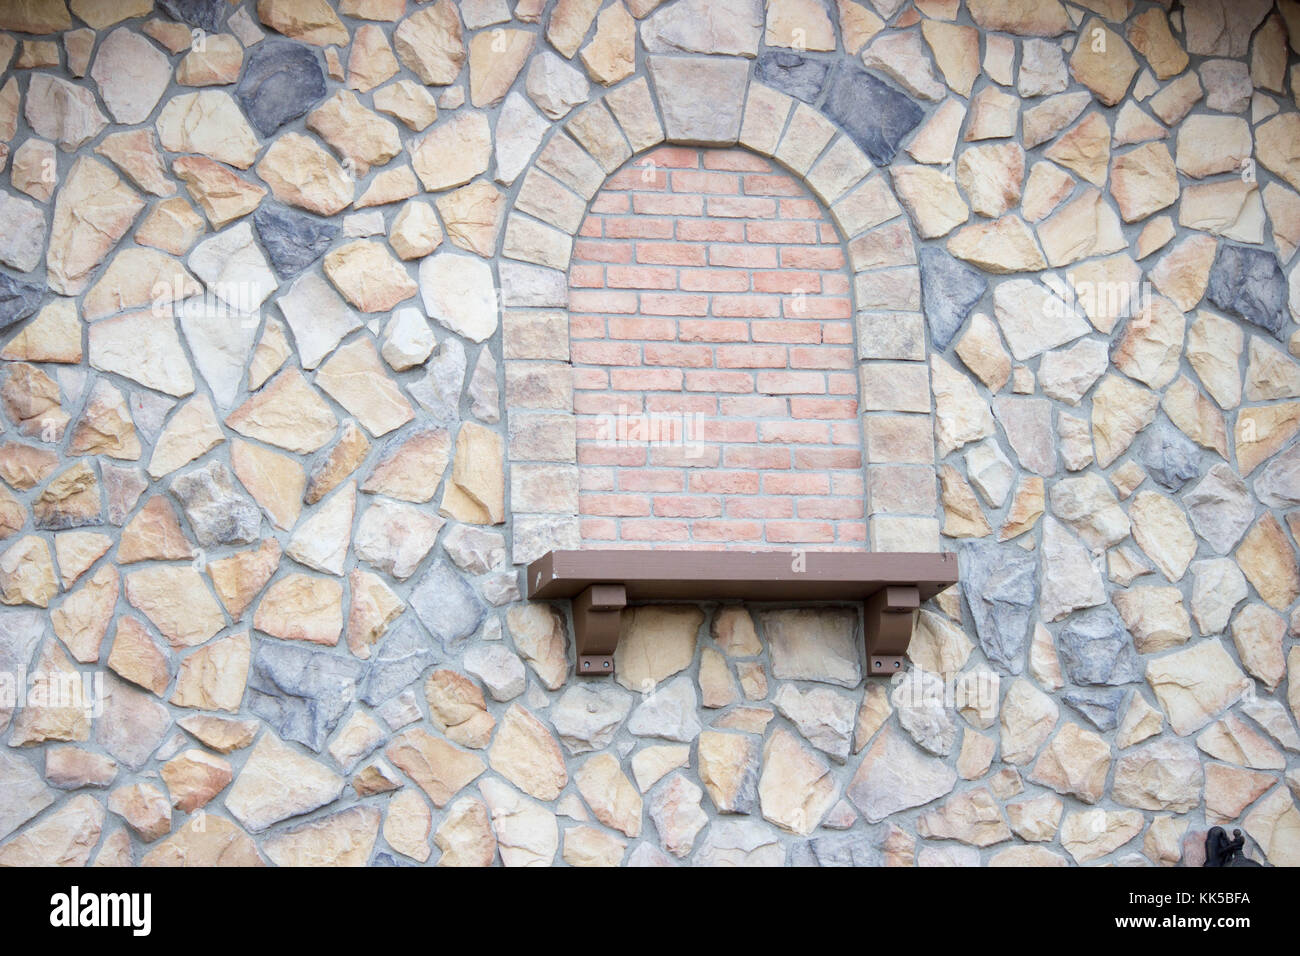 close up detail of large rock texture and cement on building - Stock Image